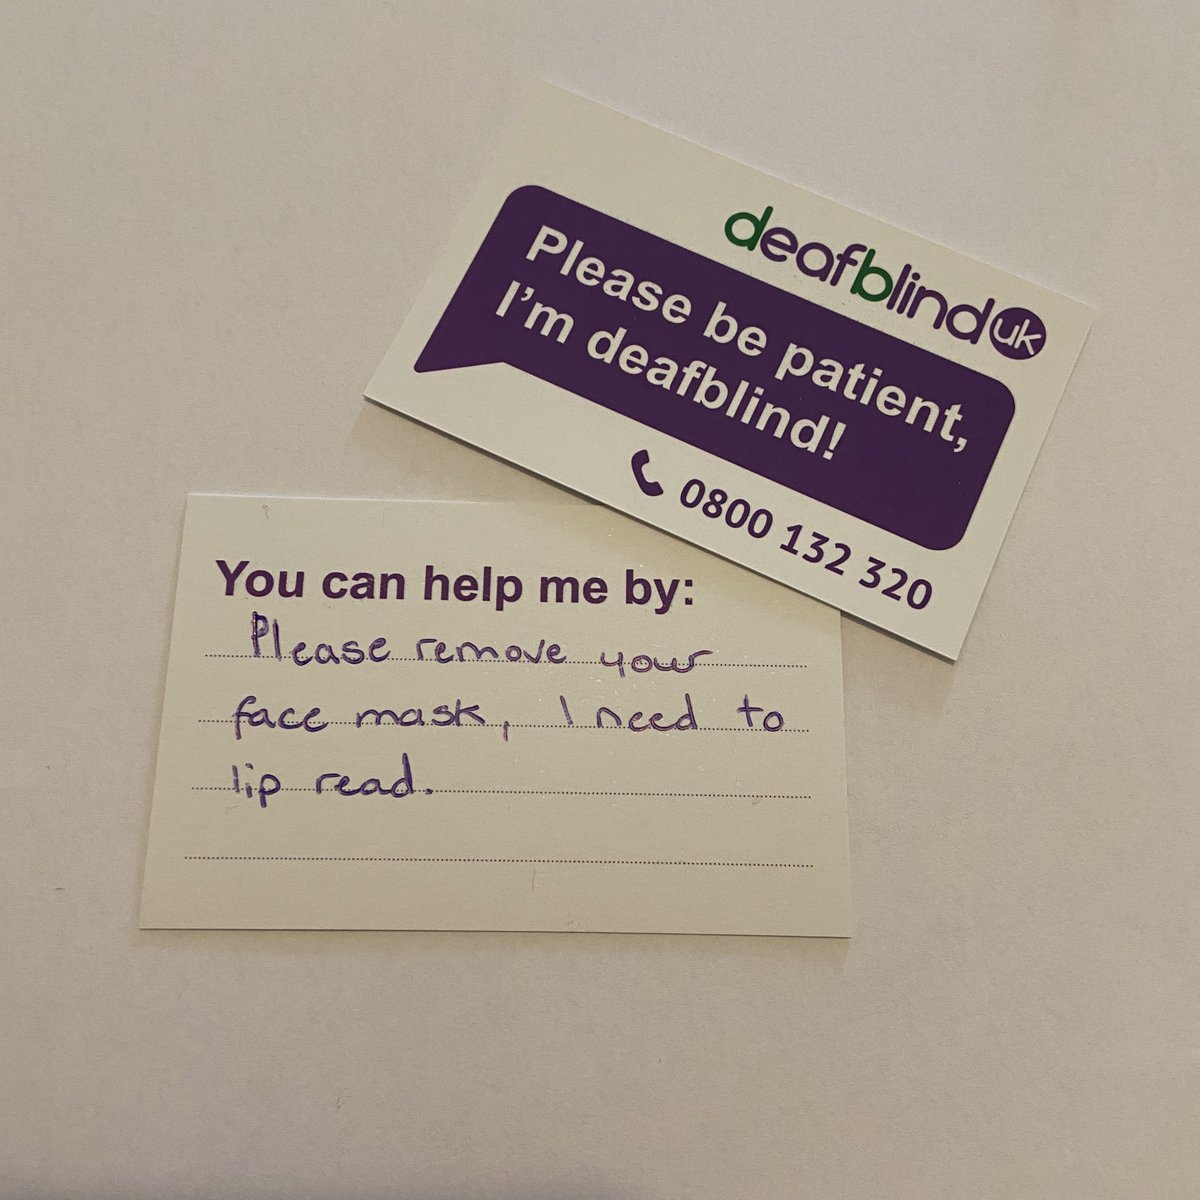 Could you benefit from one of our Deafblind cards? If so, request yours today by emailing info@deafblind.org.uk or call 0800 132 320. https://t.co/ZJRBM83nz6